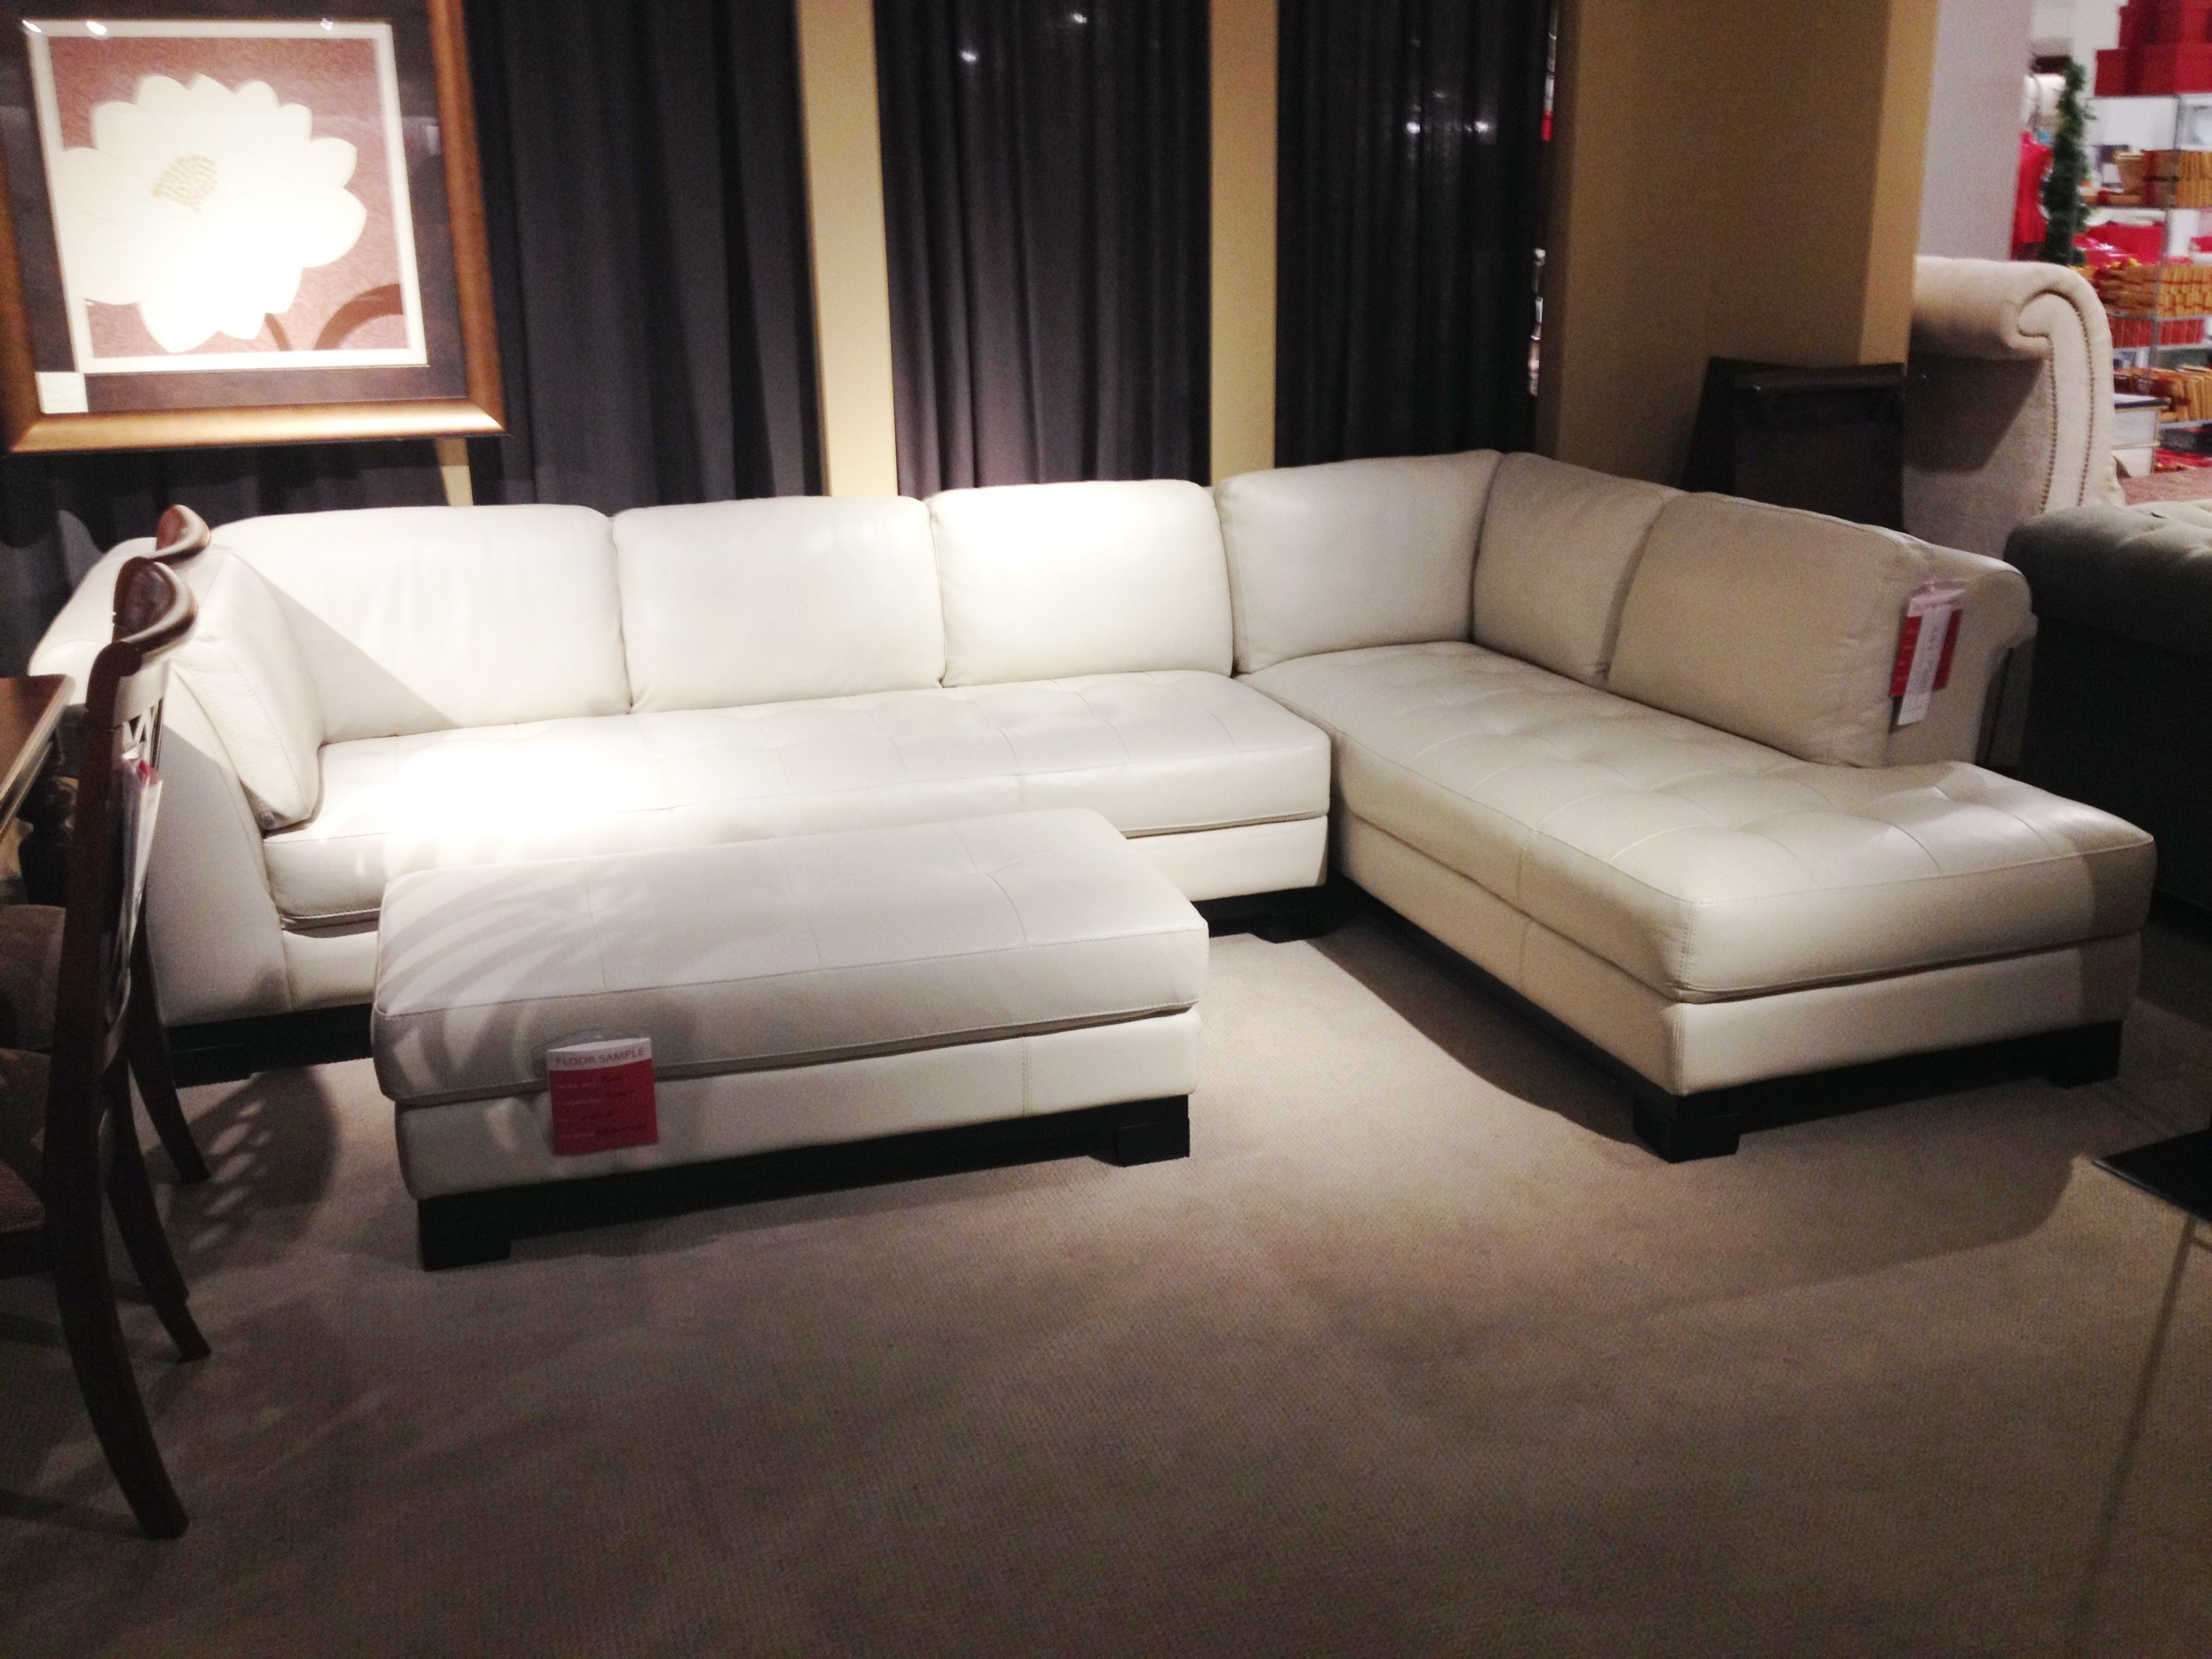 White Leather Sectional Sofa Macy S Sectional Sofa Leather Sectional Sofas Leather Sectional Sofa